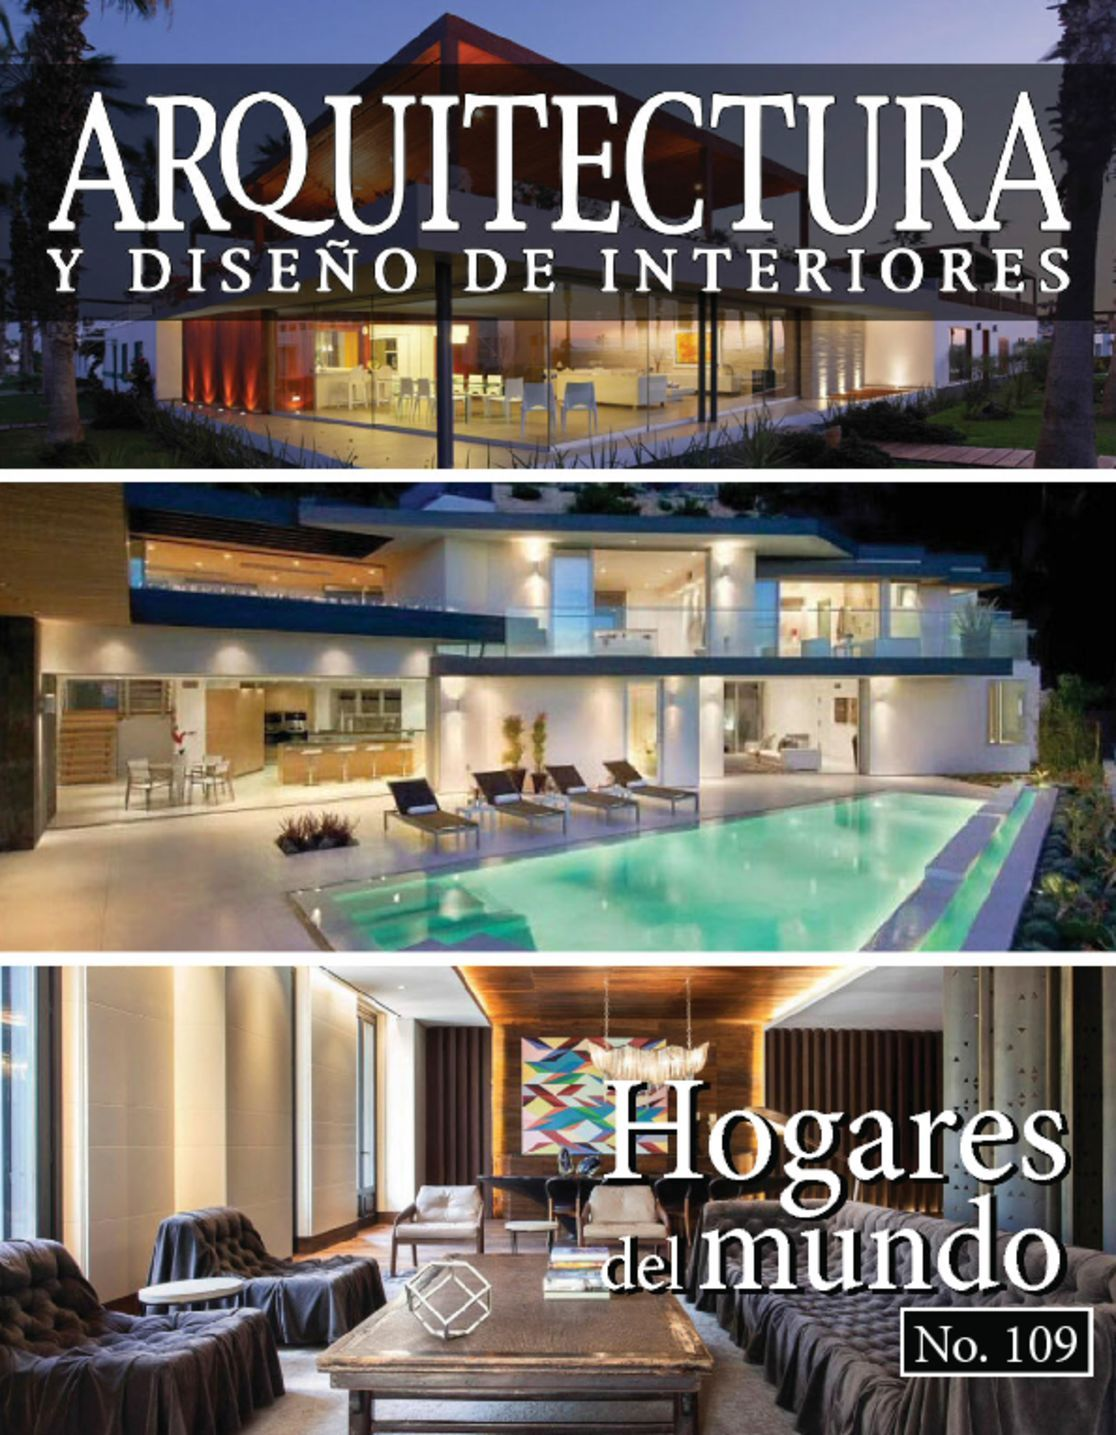 Arquitectura y dise o de interiores magazine digital for Interiores de diseño